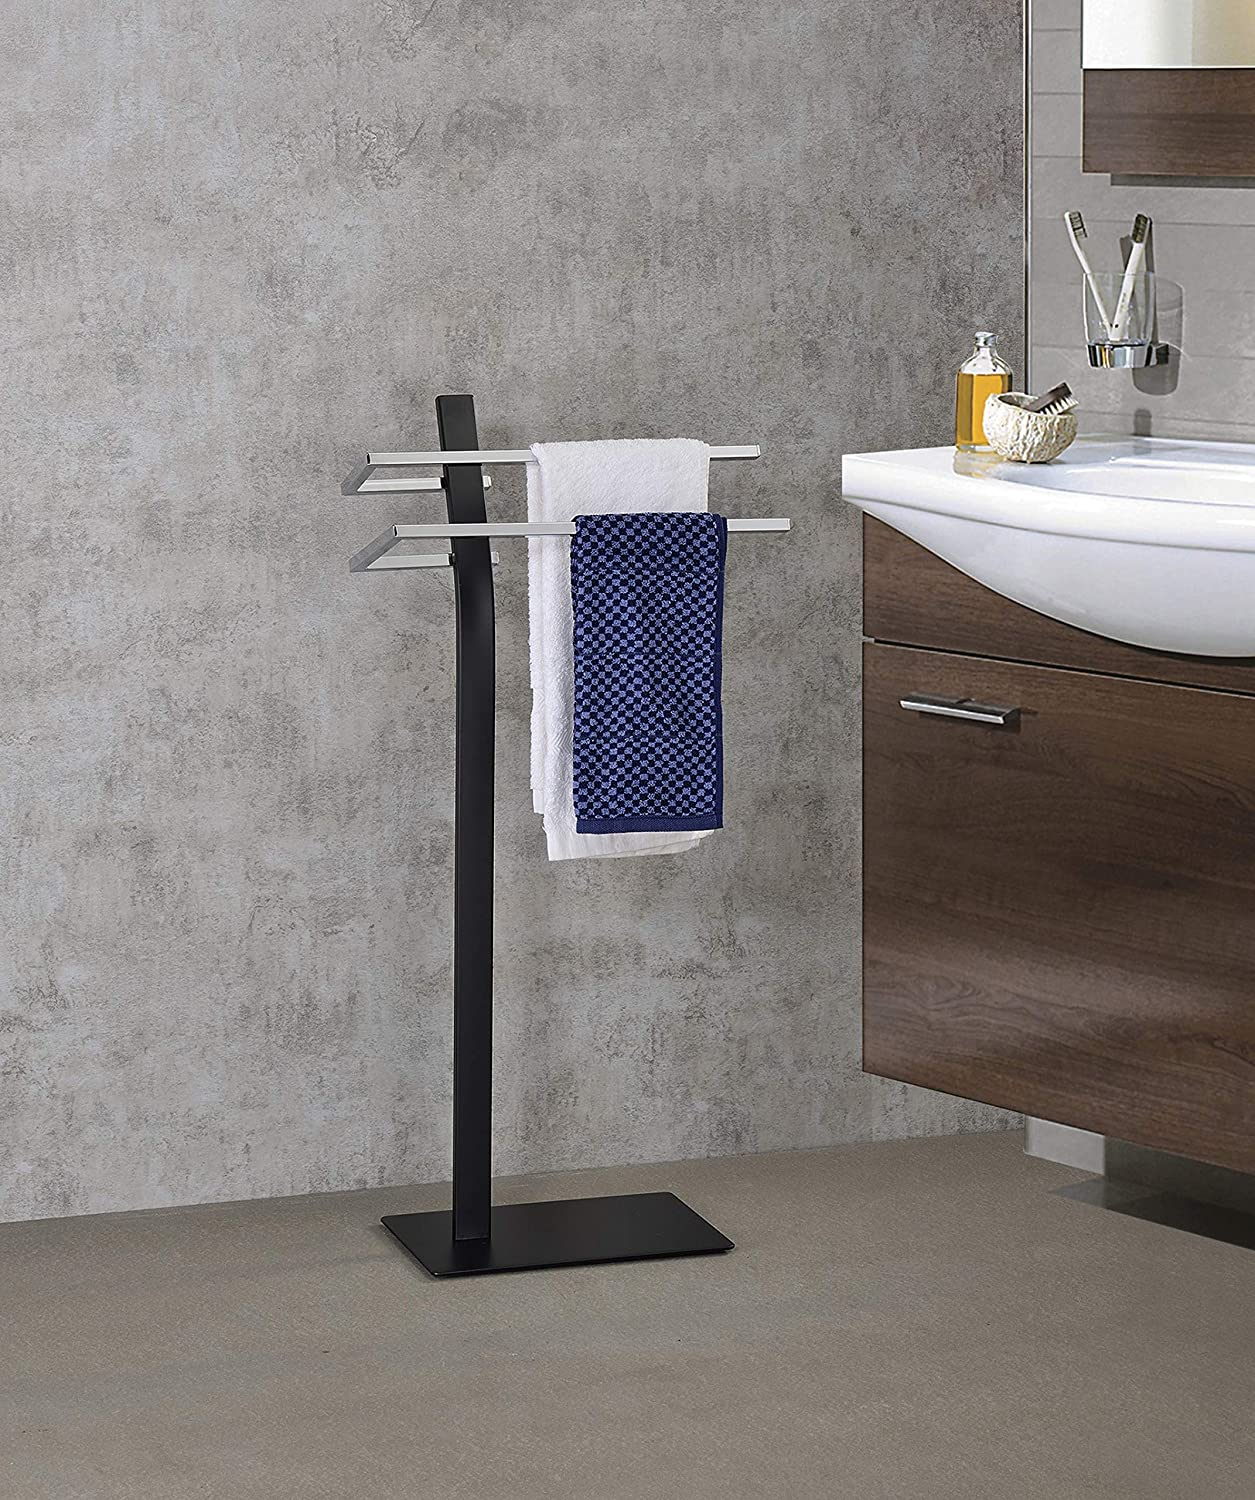 Kings Brand Furniture - Sierra Metal Freestanding Bathroom Towel Rack Stand, Black/Chrome